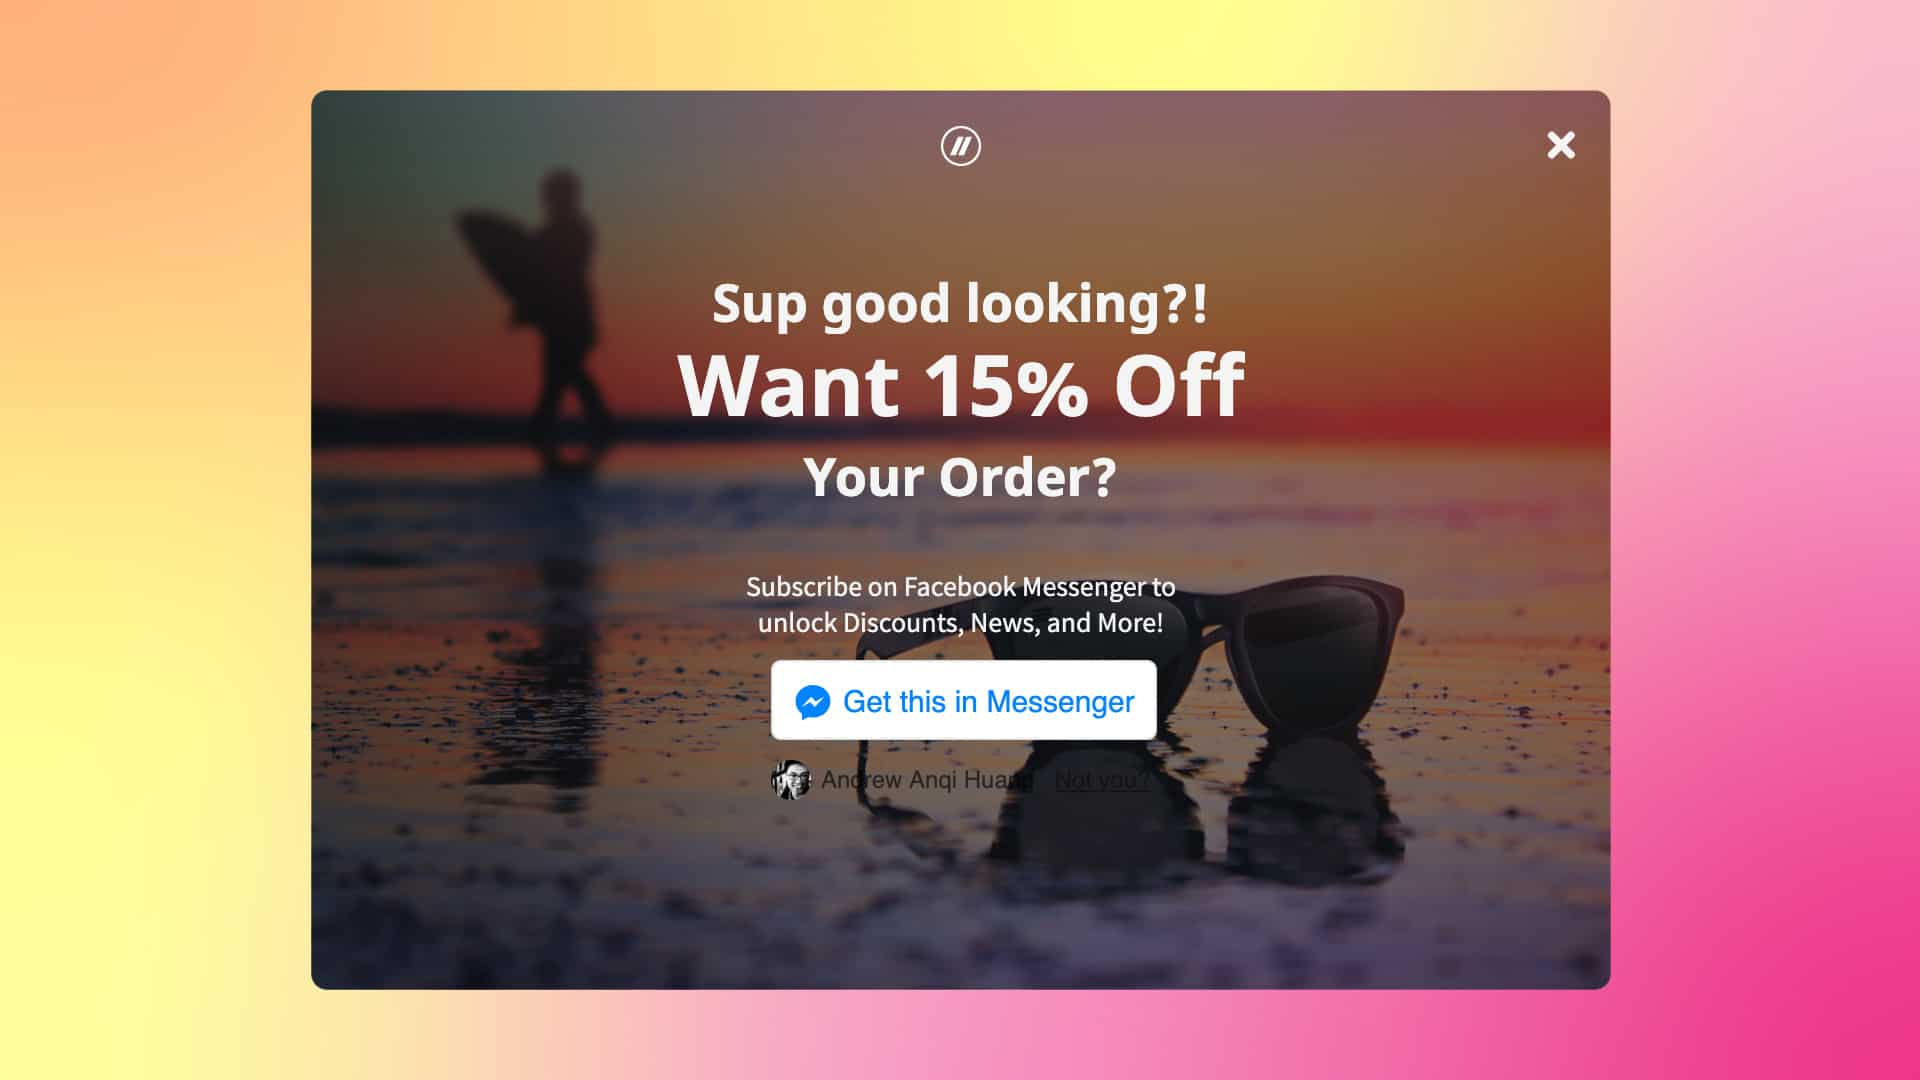 Blenders growth plugin overlay offering 15% off. Sunglasses on a warm sunset-reflecting beach with a blurry surfer in the backgorund.